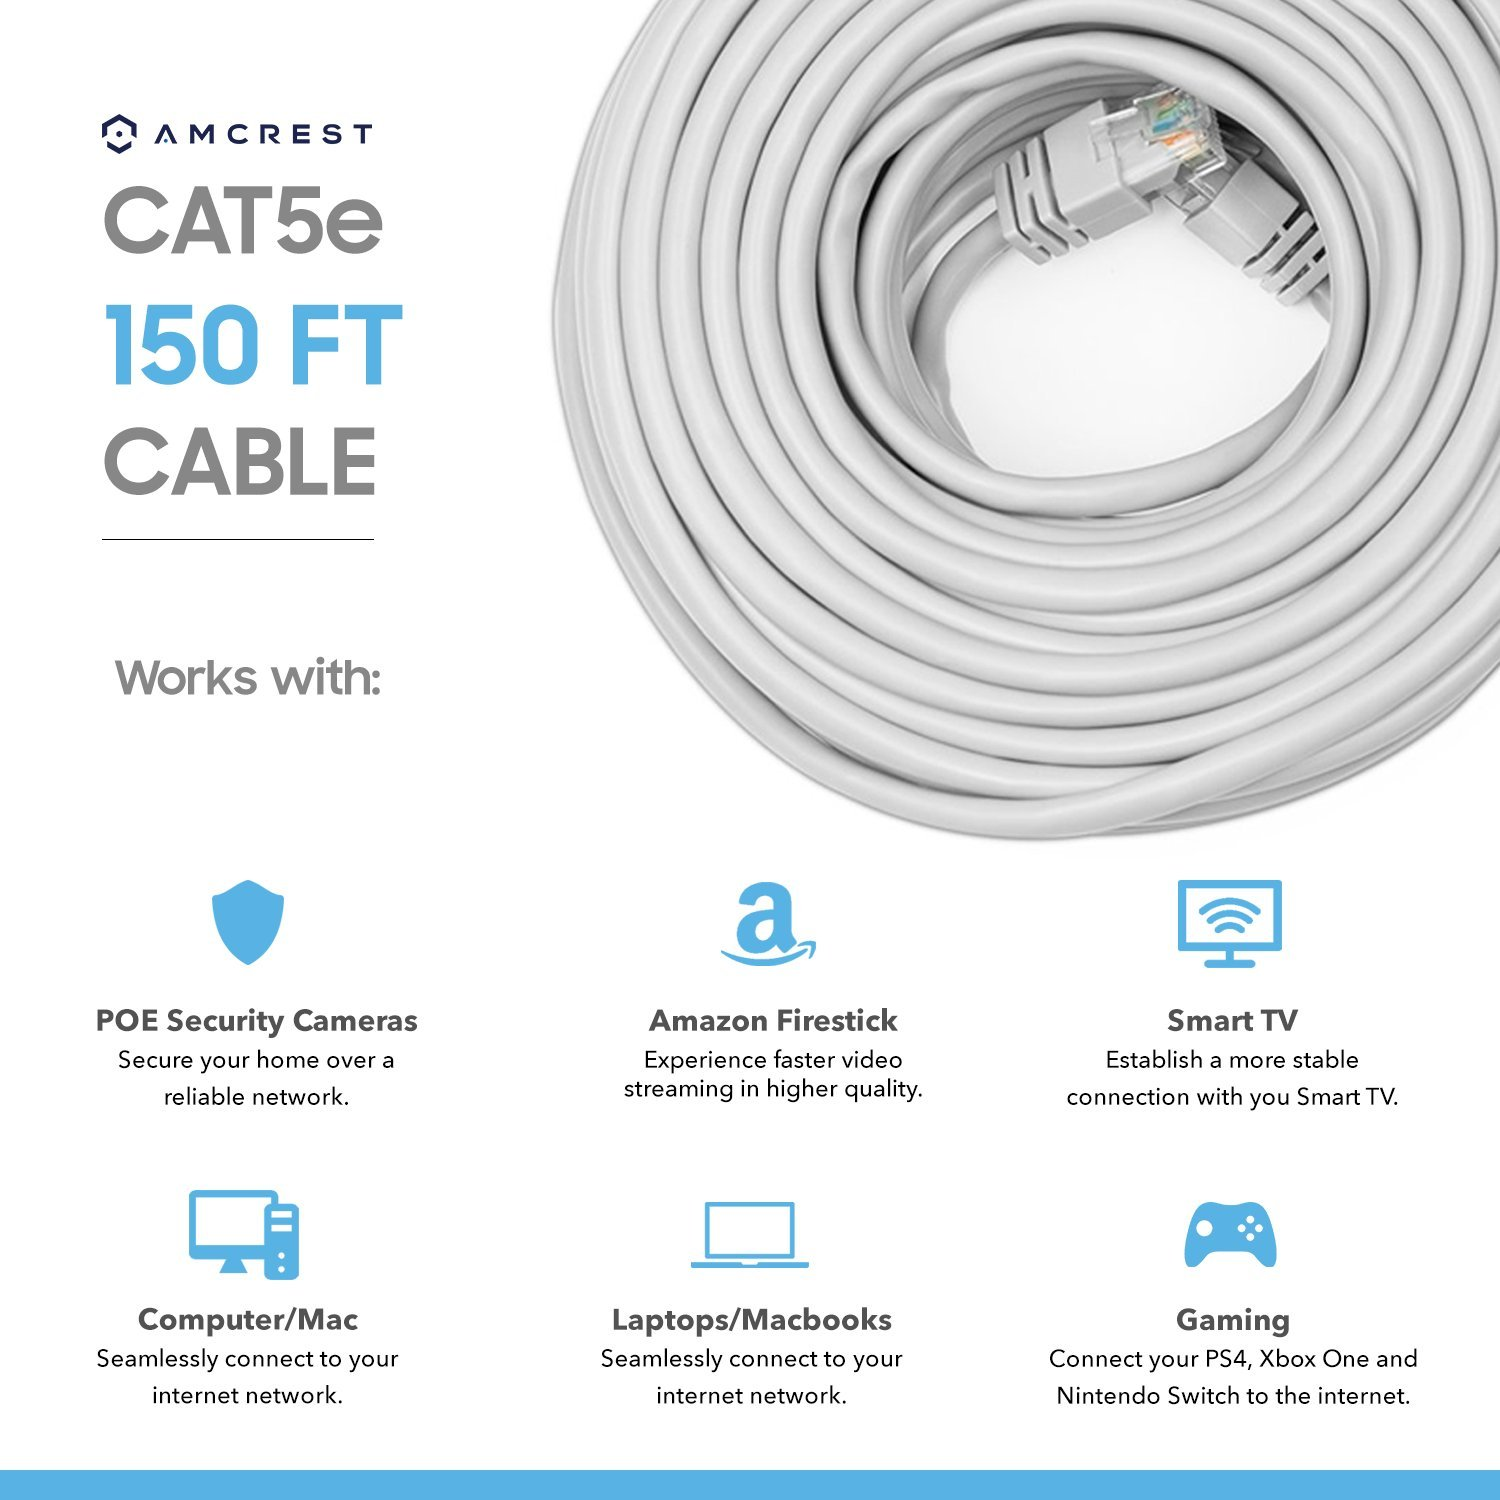 Amcrest Cat5e Cable 150ft Ethernet Cable Internet High Speed Network Cable for POE Security Cameras, Smart TV, PS4, Xbox One, Router, Laptop, Computer, Home, 4-Pack (4PACK-CAT5ECABLE150) by Amcrest (Image #2)